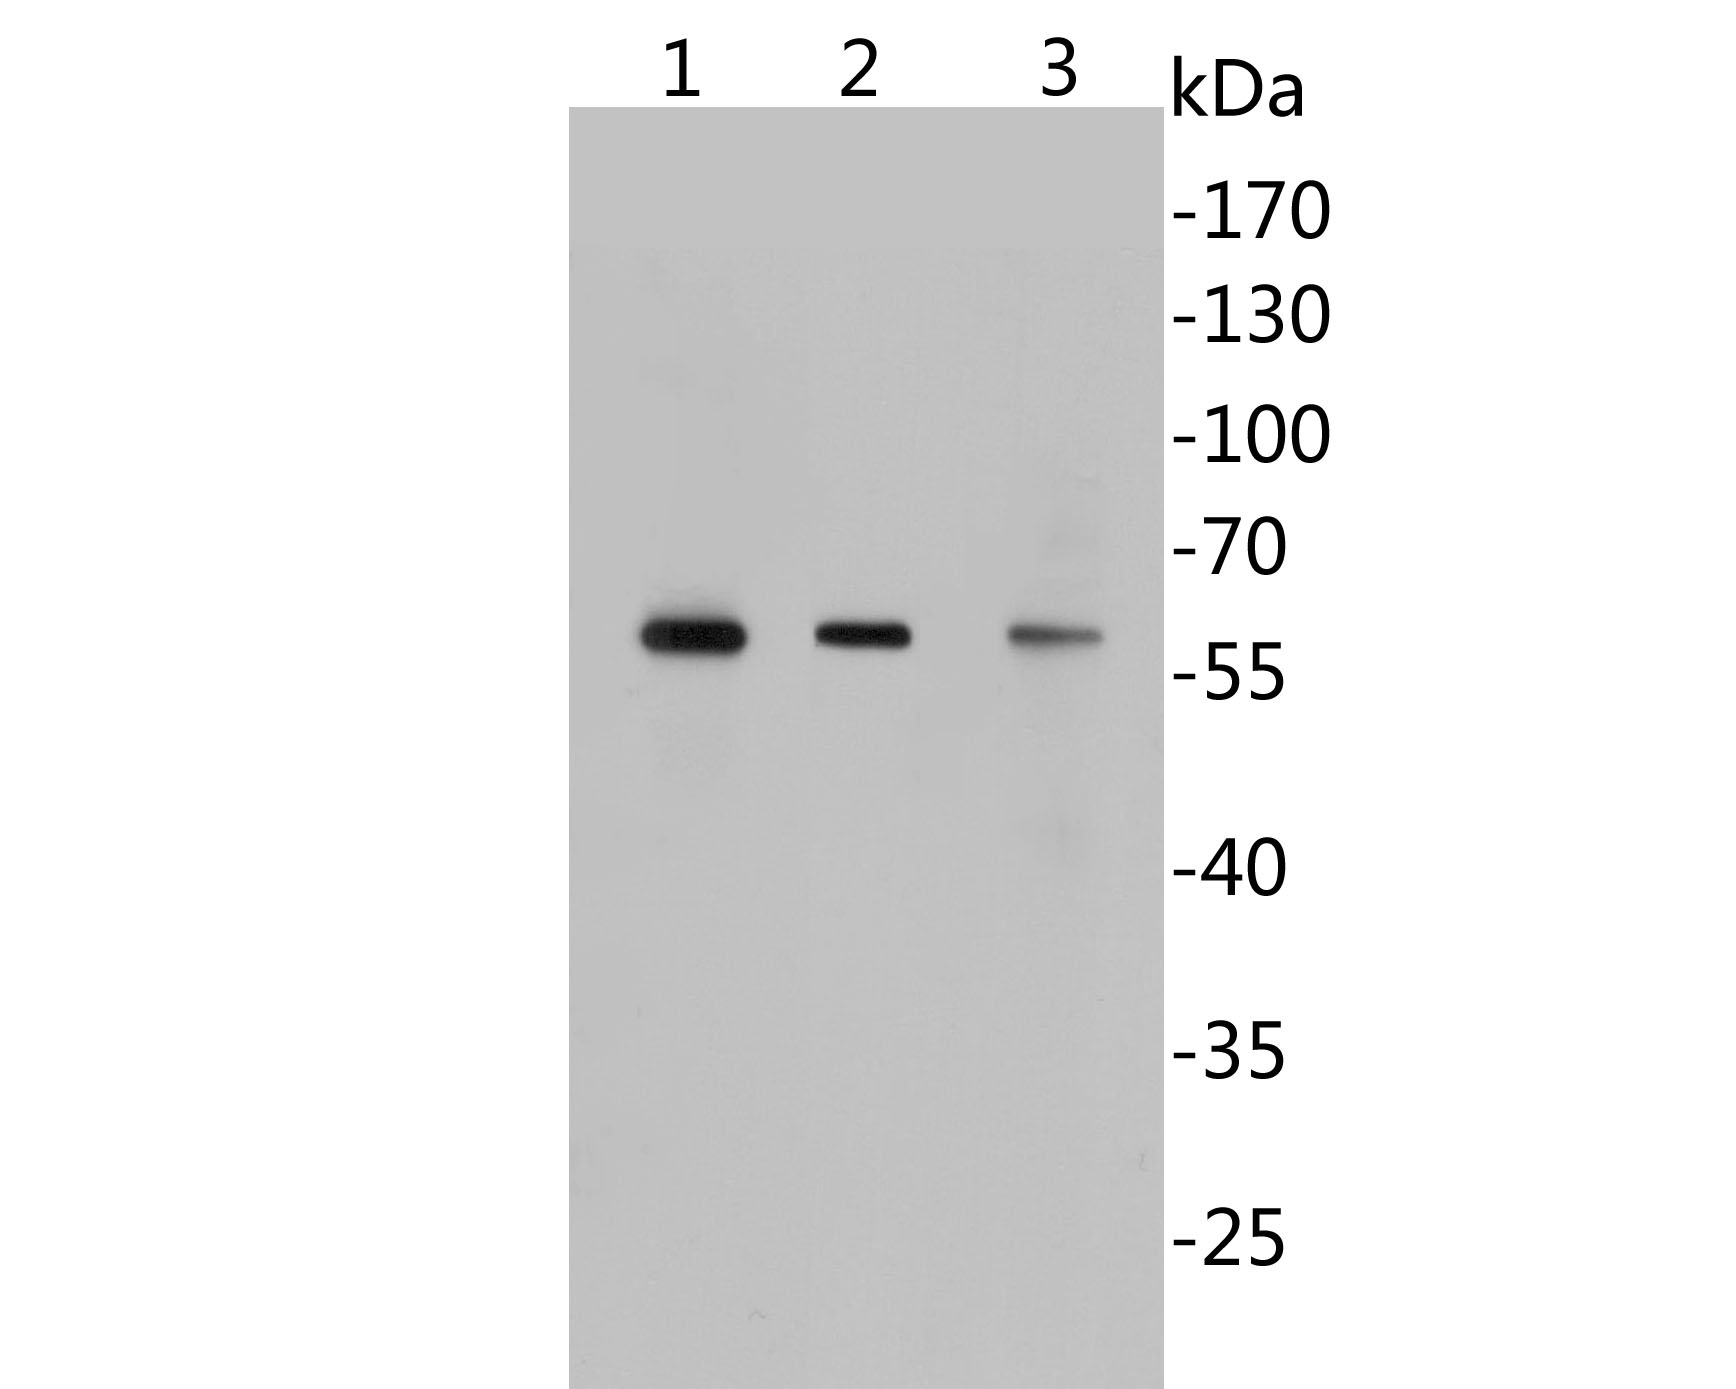 Western blot analysis of GABA A Receptor alpha 5 on different lysates using anti-GABA A Receptor alpha 5 antibody at 1/1,000 dilution.<br />  Positive control: <br />  Lane 1: A549 cell lysate <br />  Lane 2: 293T cell lysate<br />  Lane 3: Rat brain tissue lysate